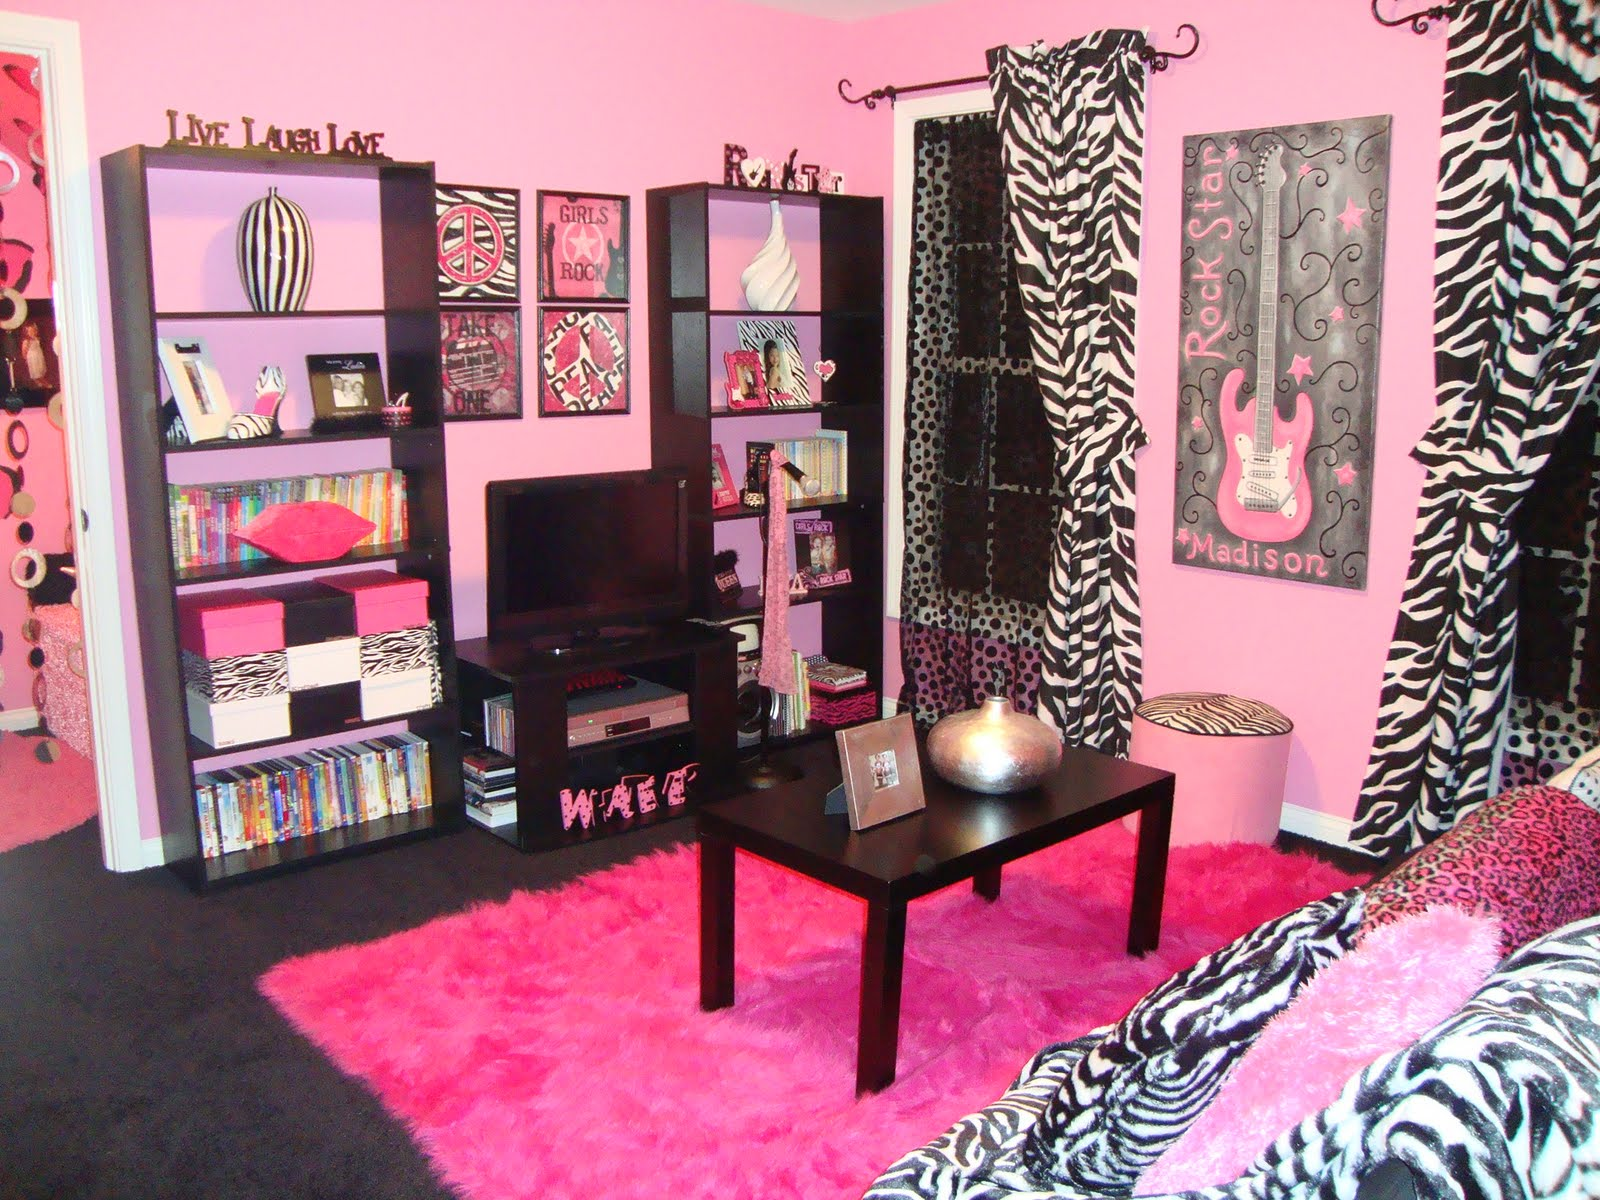 hot pink zebra room decor fashionable teen hangout lounge design